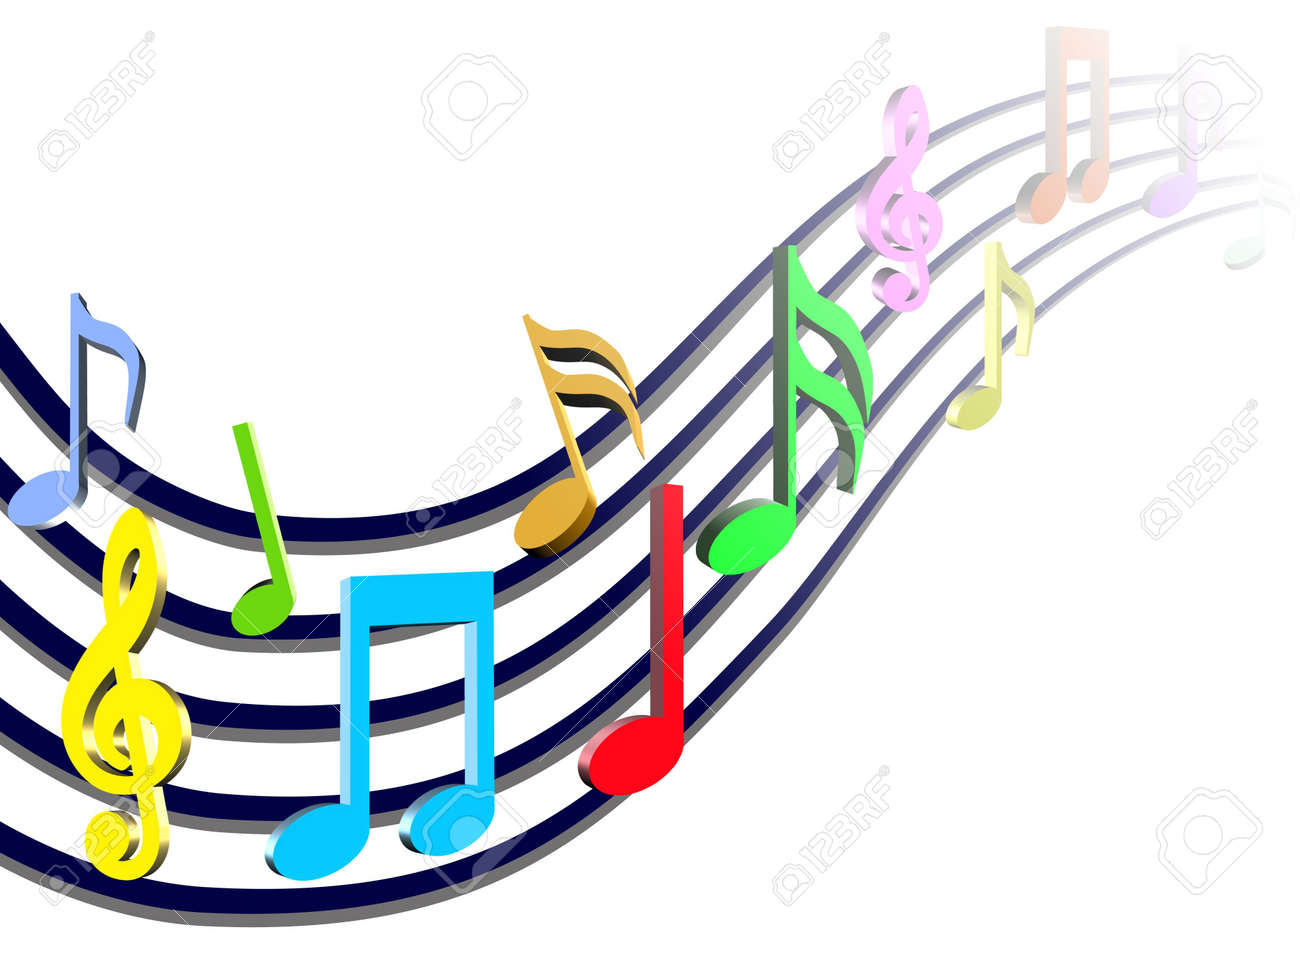 colorful music notes illustration stock photo picture and royalty rh 123rf com cartoon musical notes clipart cartoon musical notes images